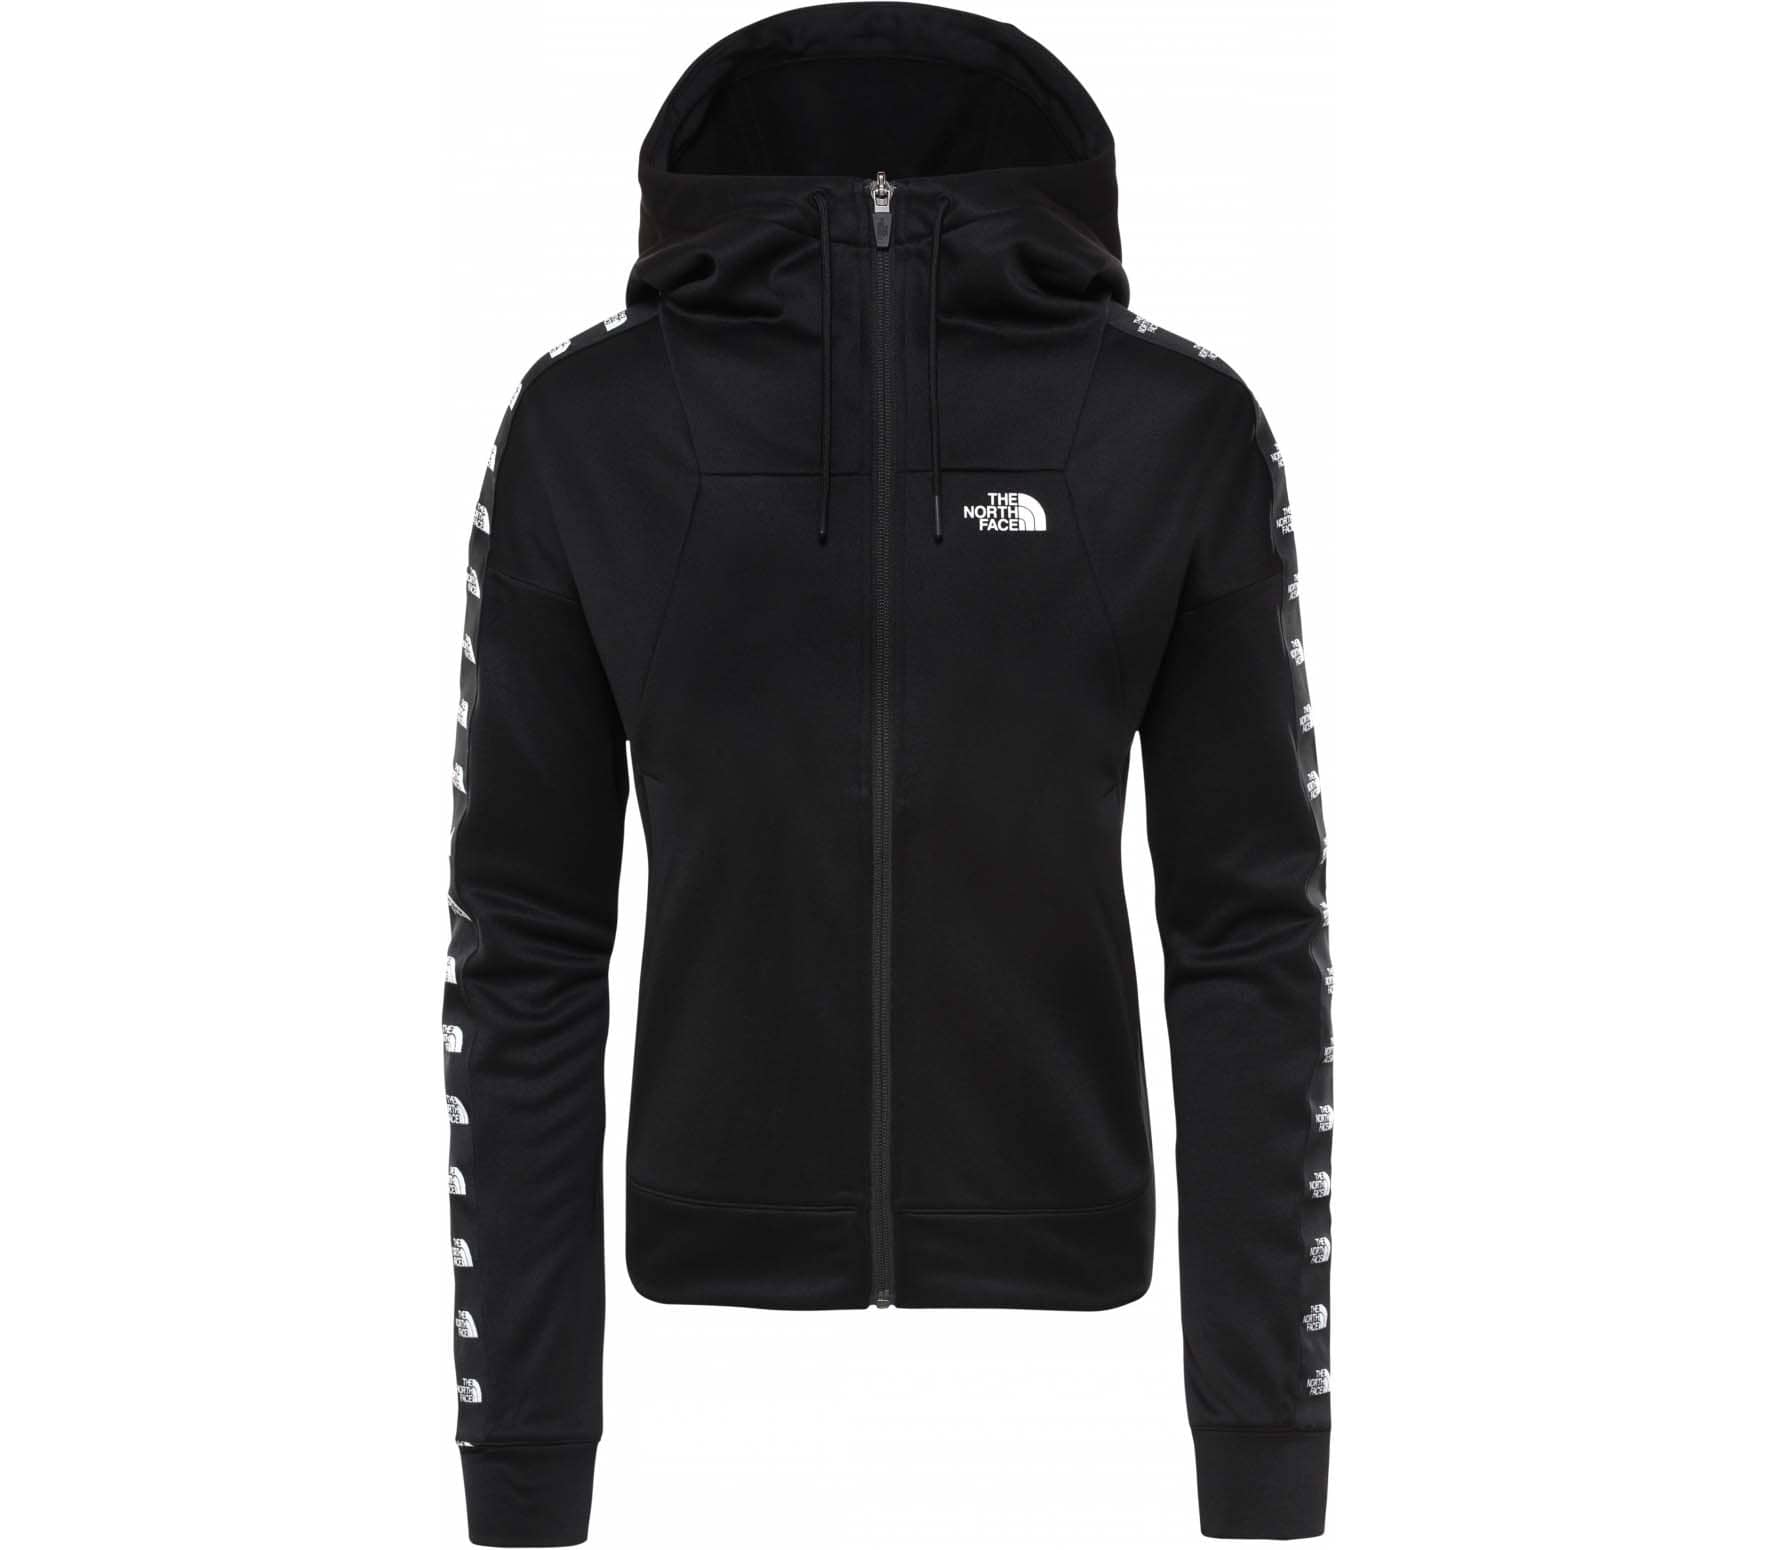 a9475209fb The North Face TNL CROP FULL ZIP Damen Jacke schwarz im Online Shop ...